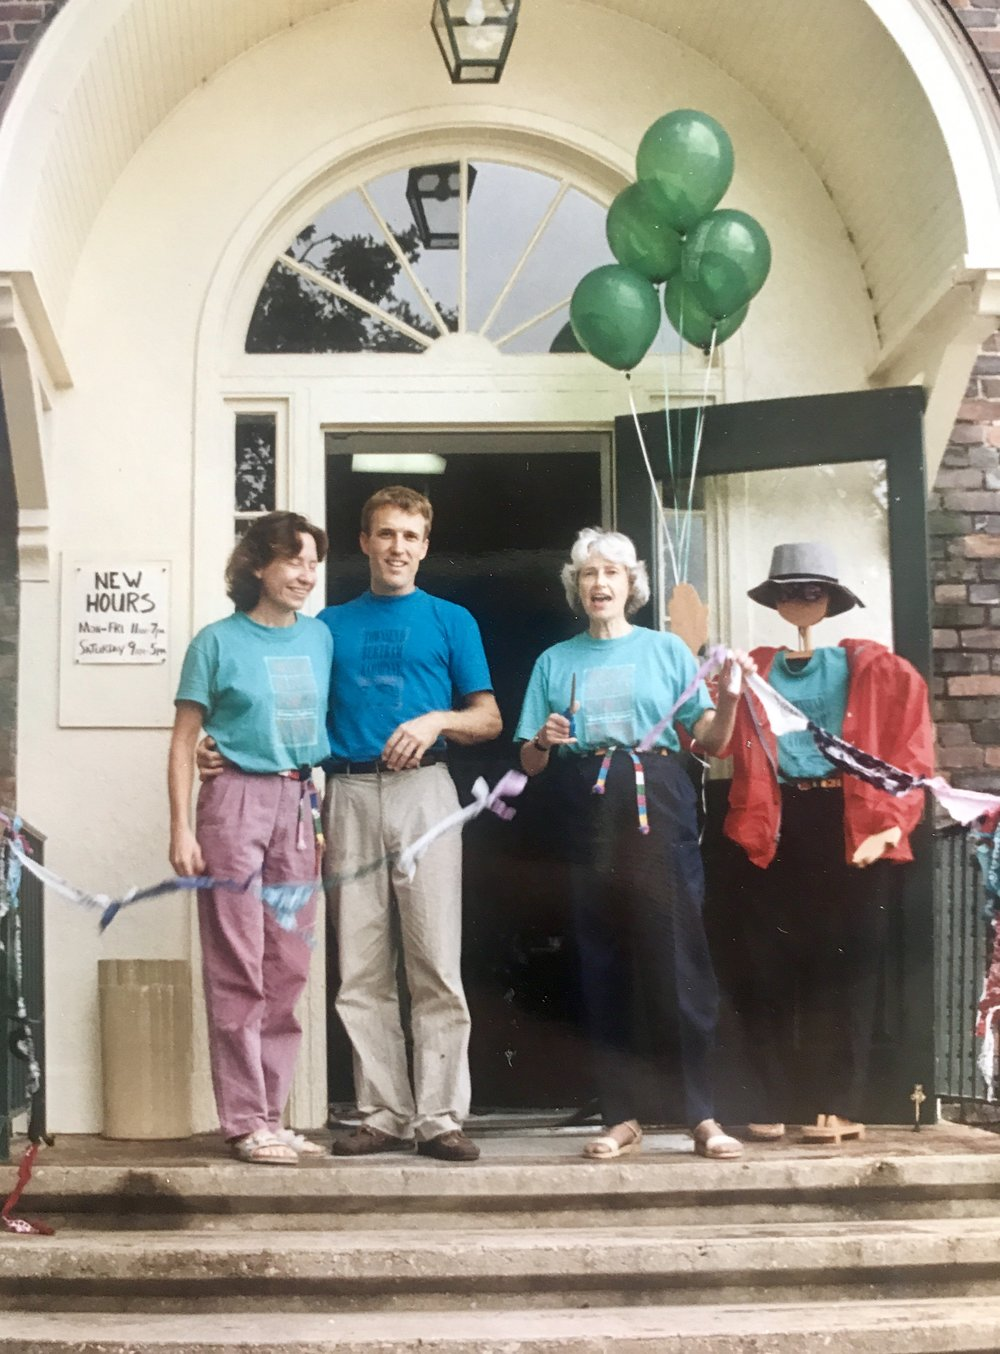 Audrey, Scott and Mayor Ellie Kinnaird cutting the ribbon on opening day, welcoming the very first customers into Townsend Bertram & Company! Four of the original TB&C tees modeled above.